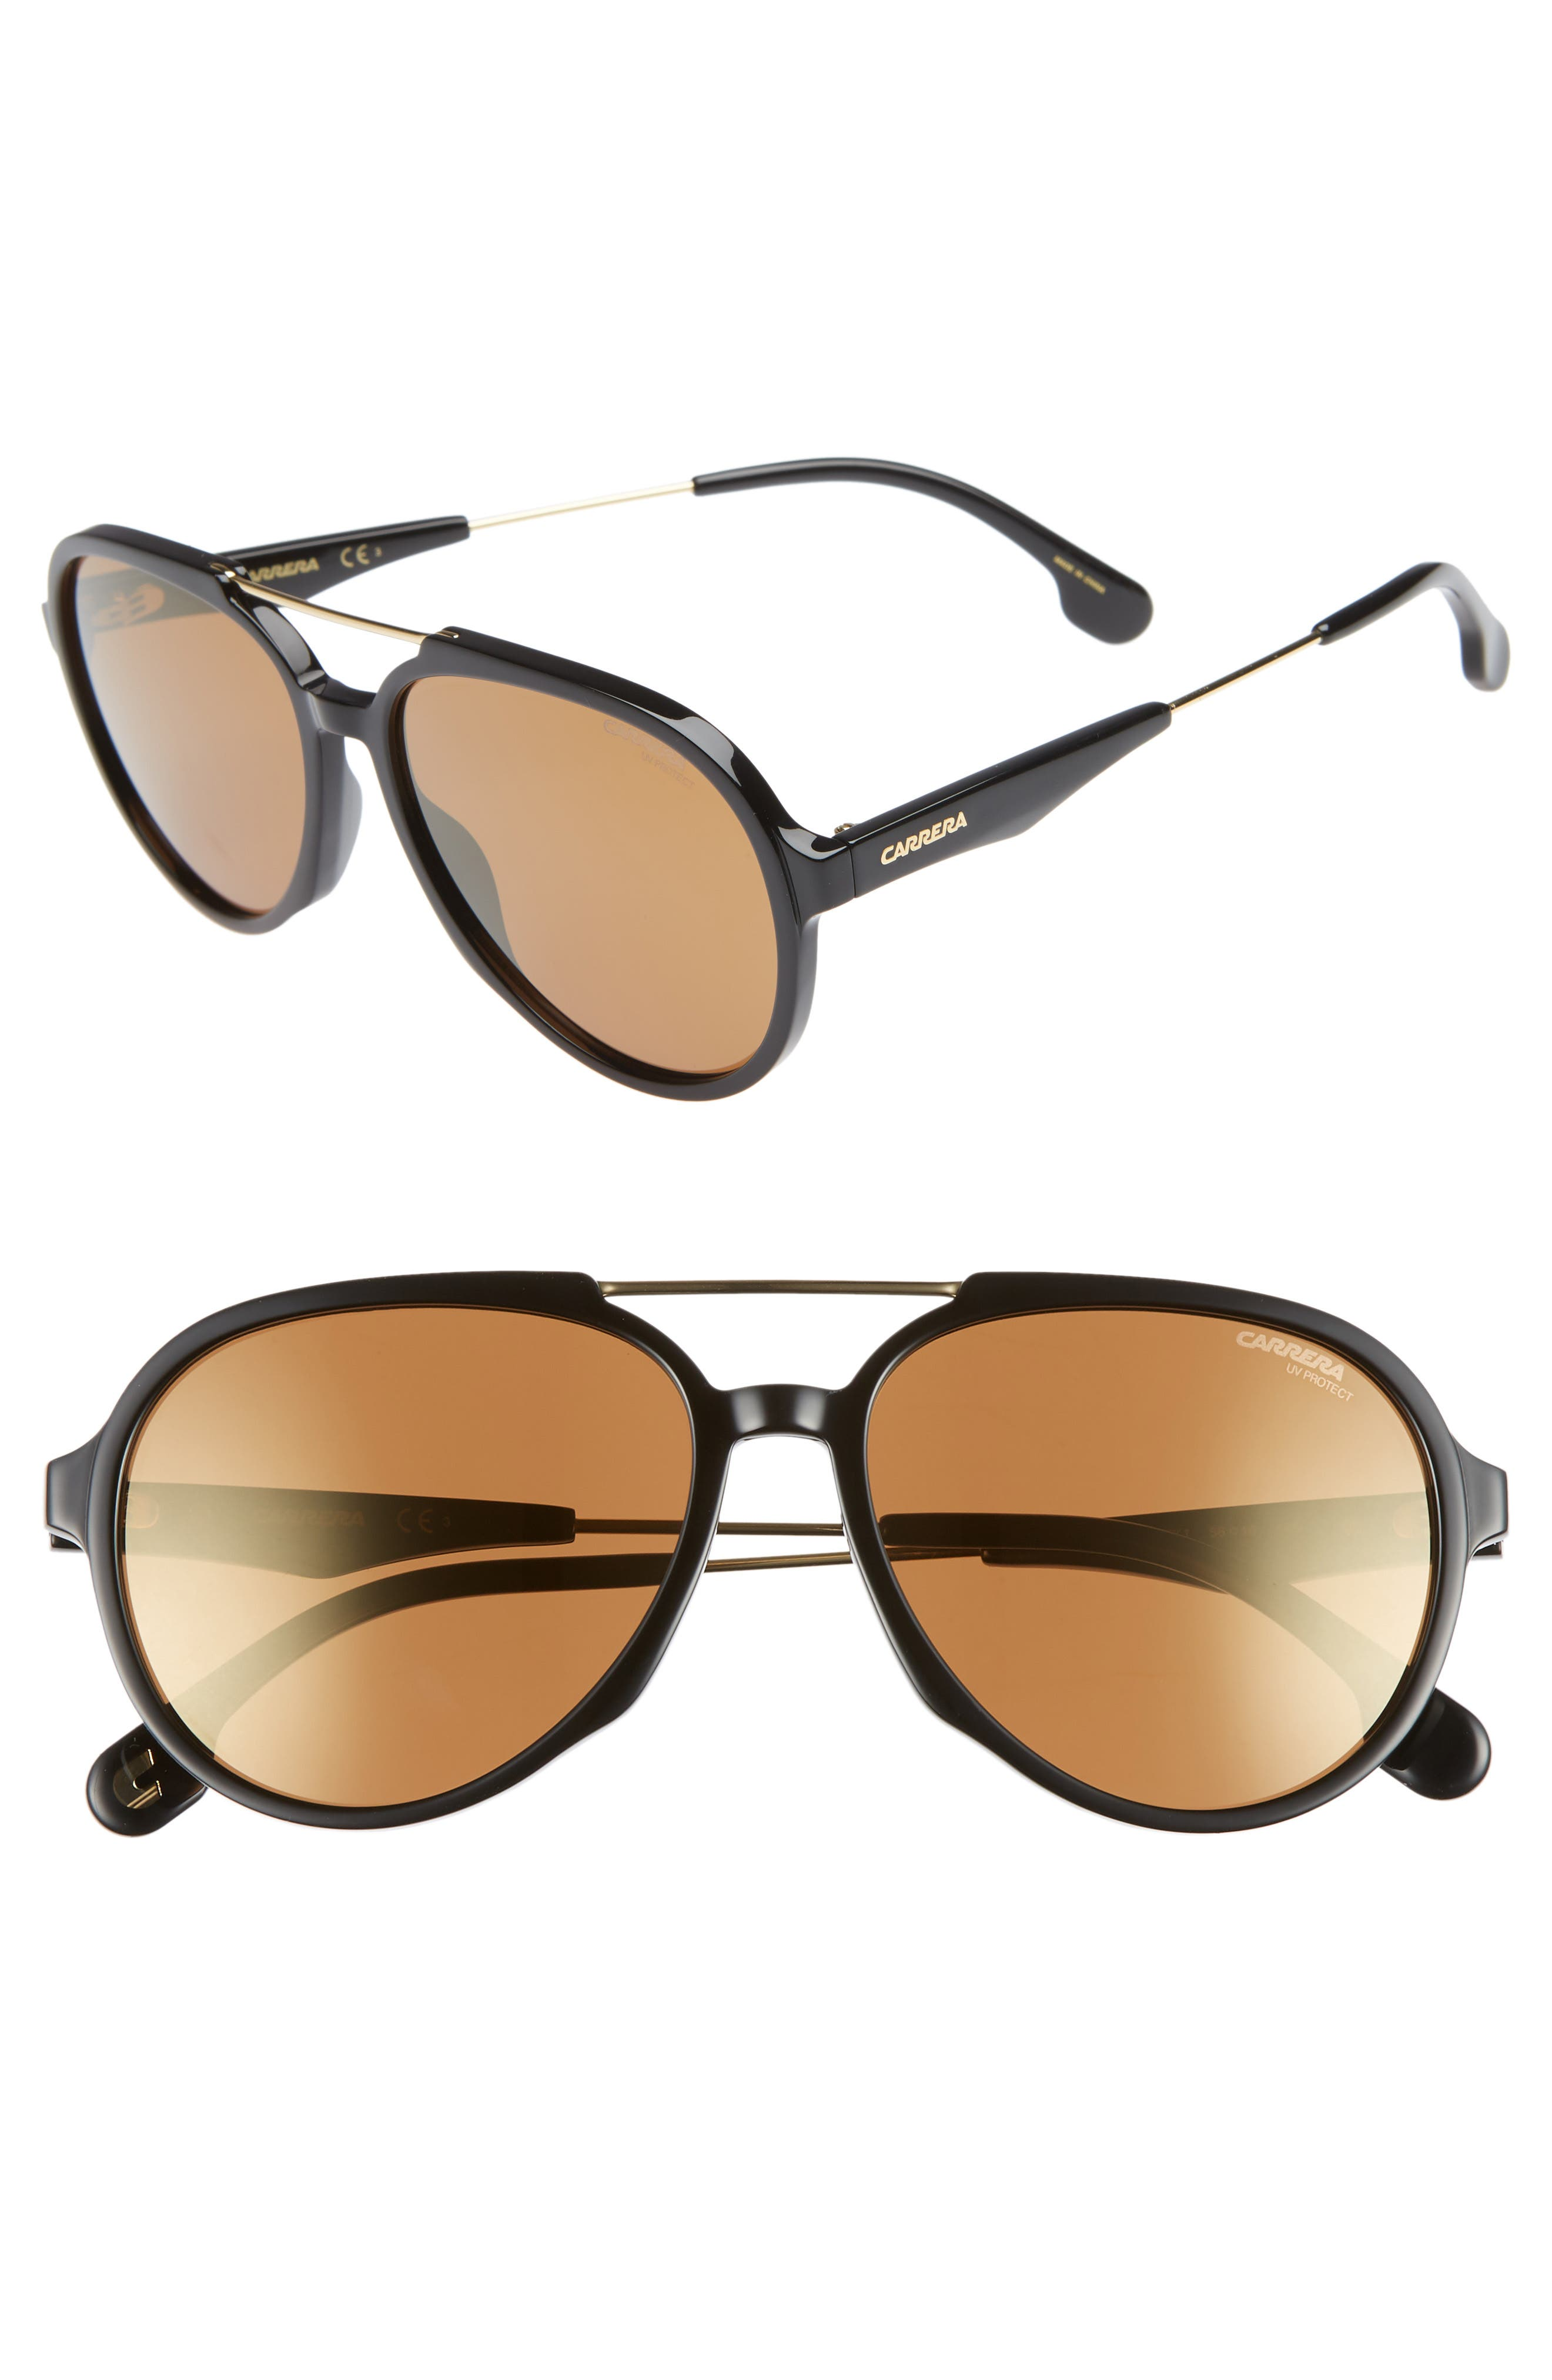 56mm Aviator Sunglasses,                         Main,                         color, BLACK